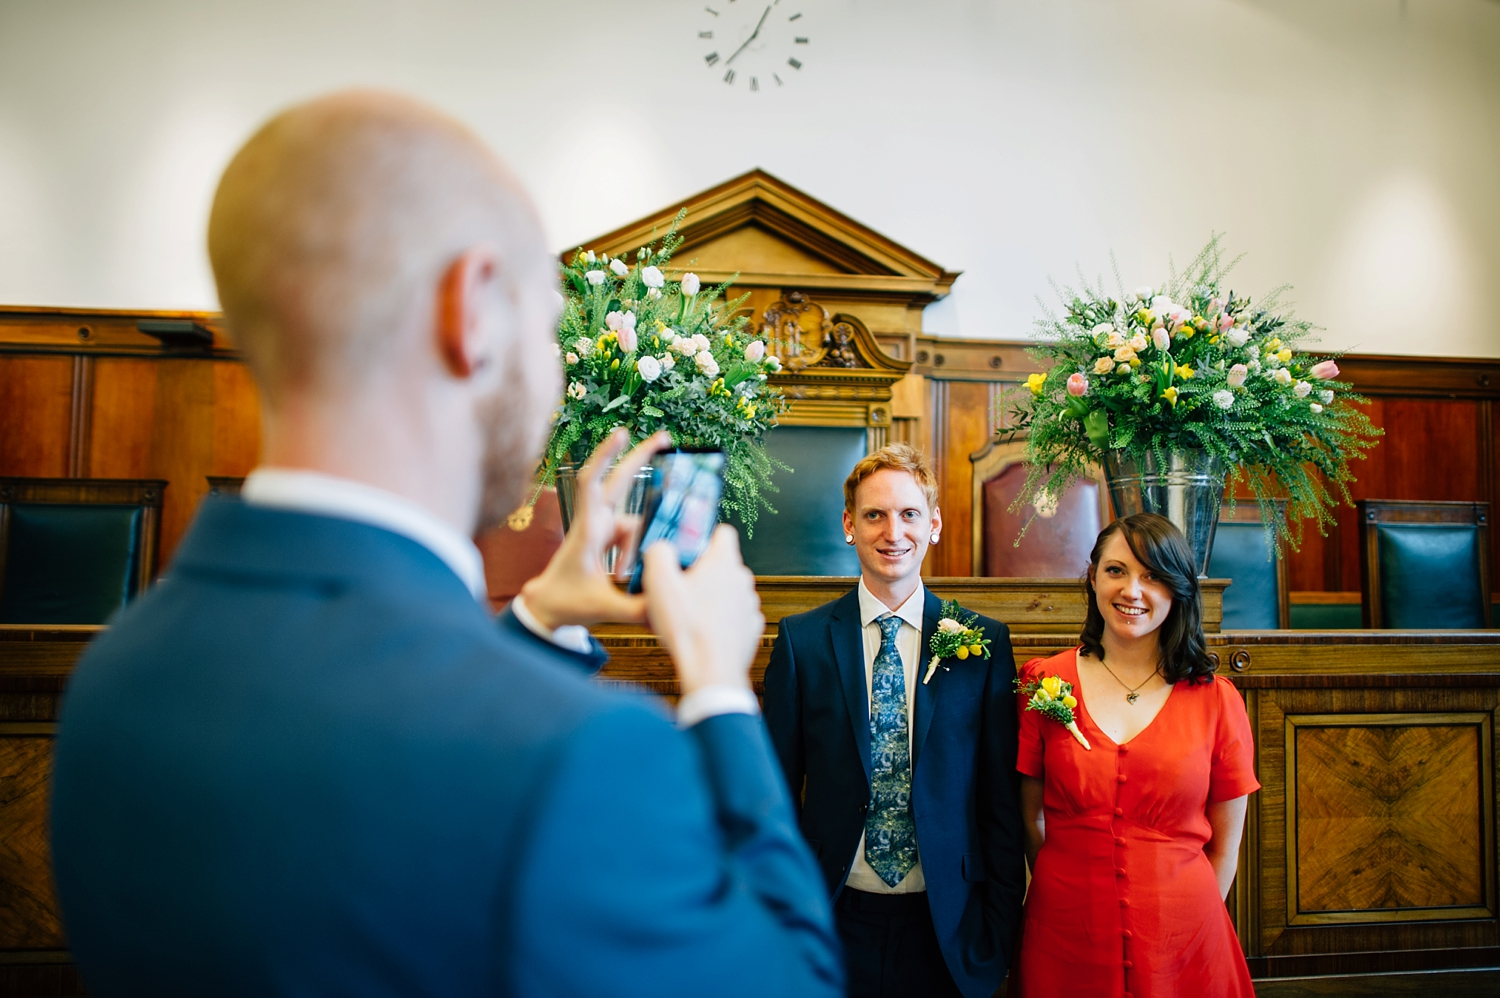 0034-lisa-devine-alternative-wedding-photography-london-hackney-dalston-london-photography-townhall-hotel.JPG